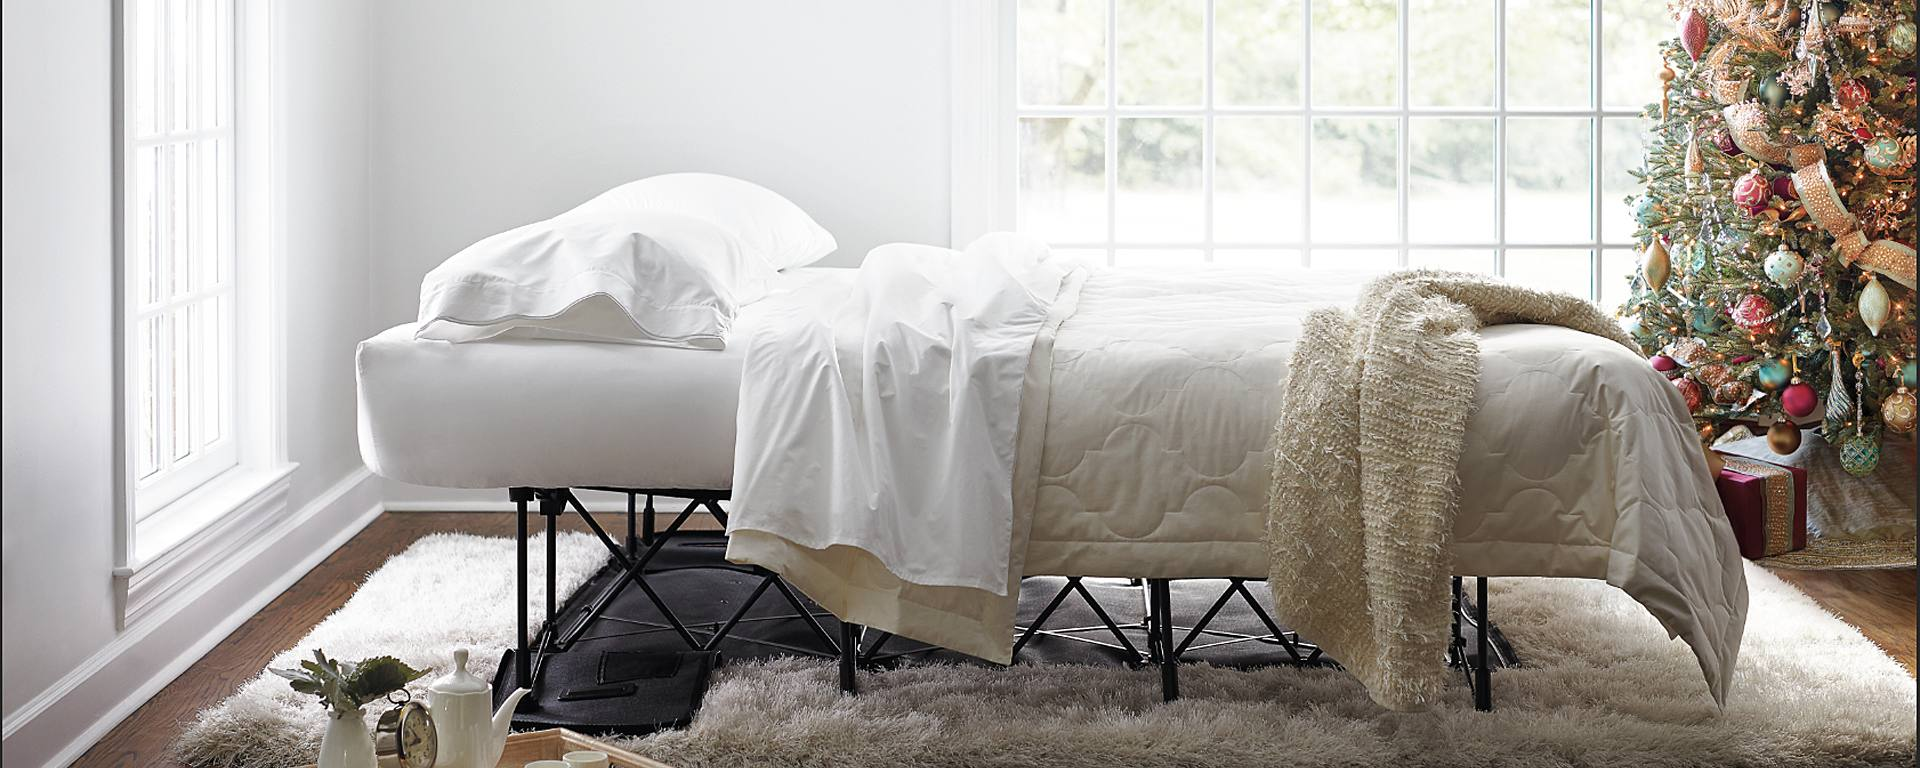 The Best Place for Guests to Rest: Frontgate's EZ Bed